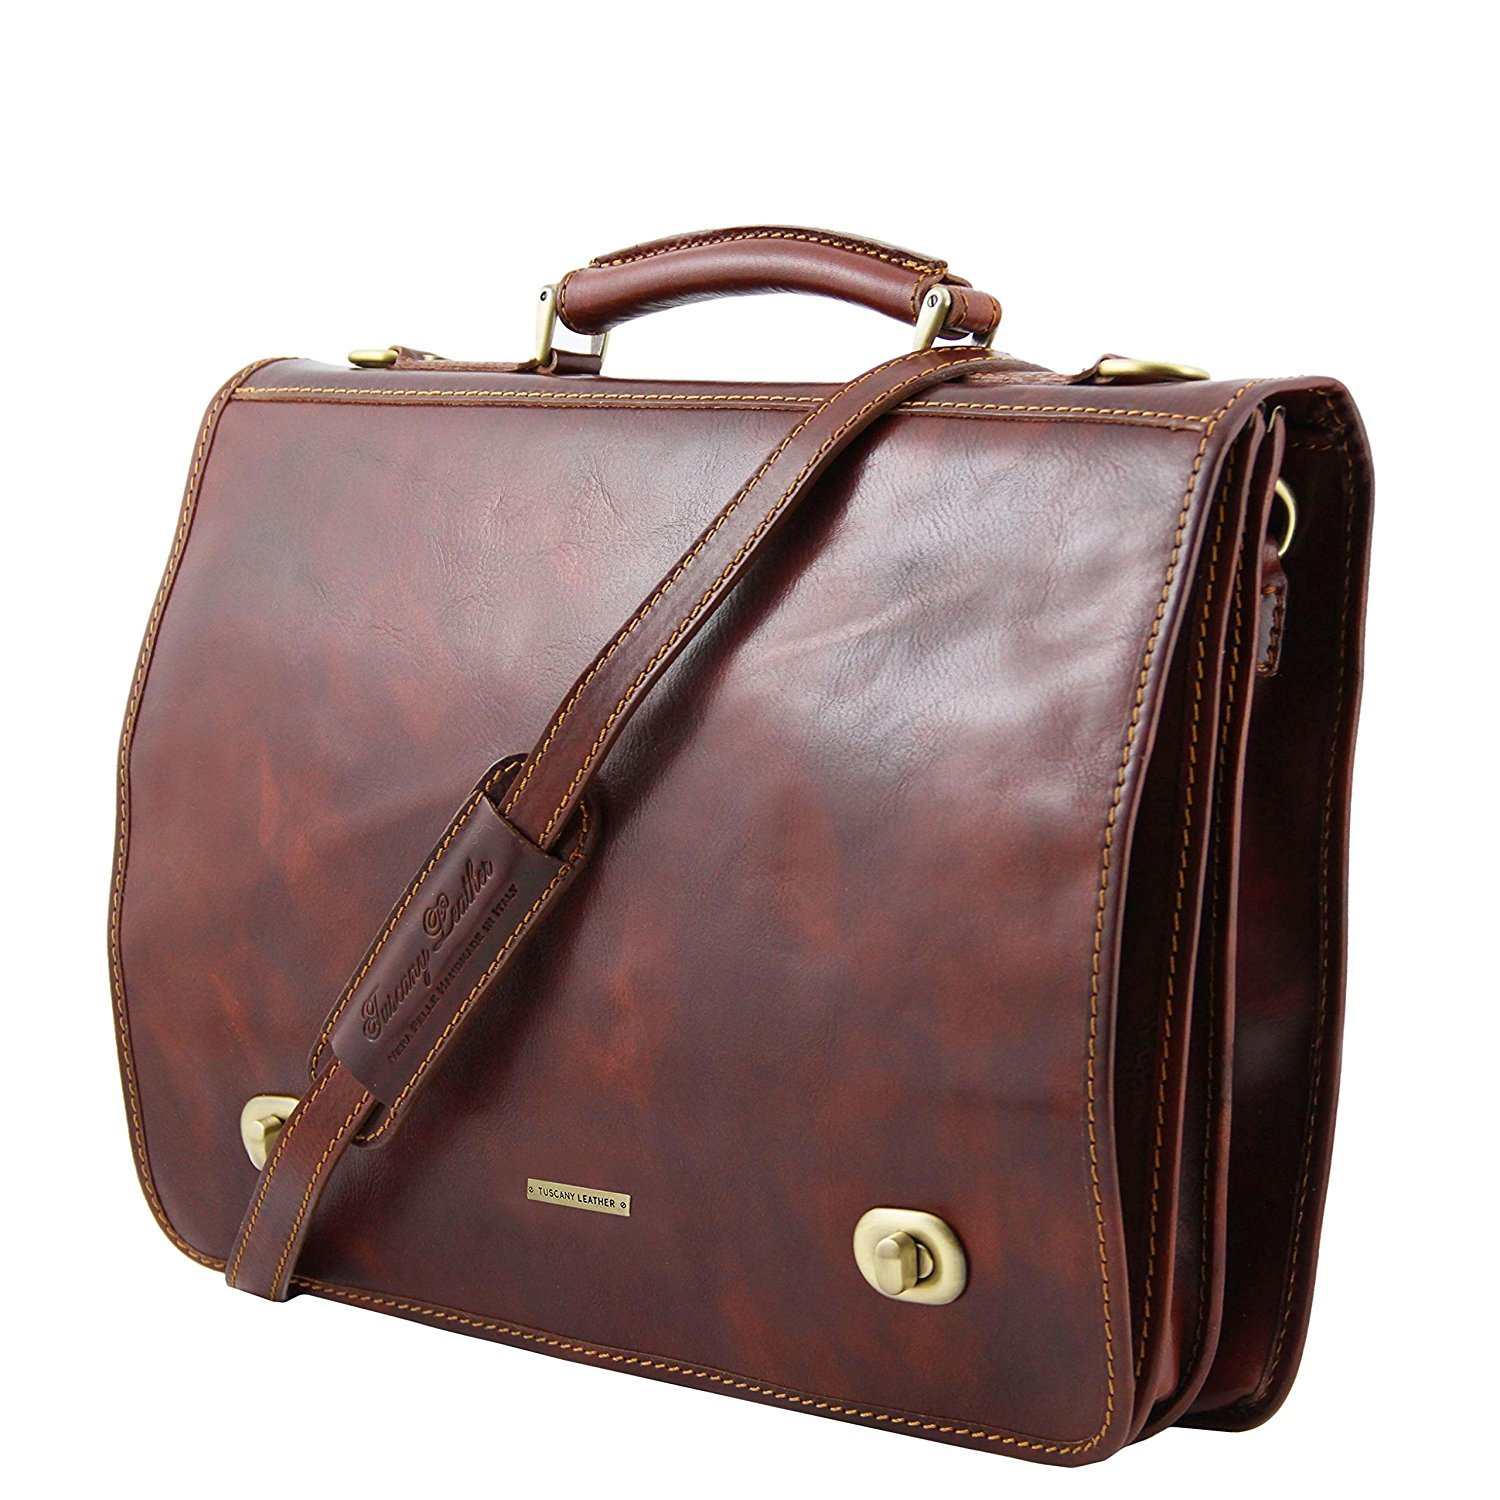 Siena Leather messenger bag 2 compartments Dark Brown TL10054//5 Tuscany Leather